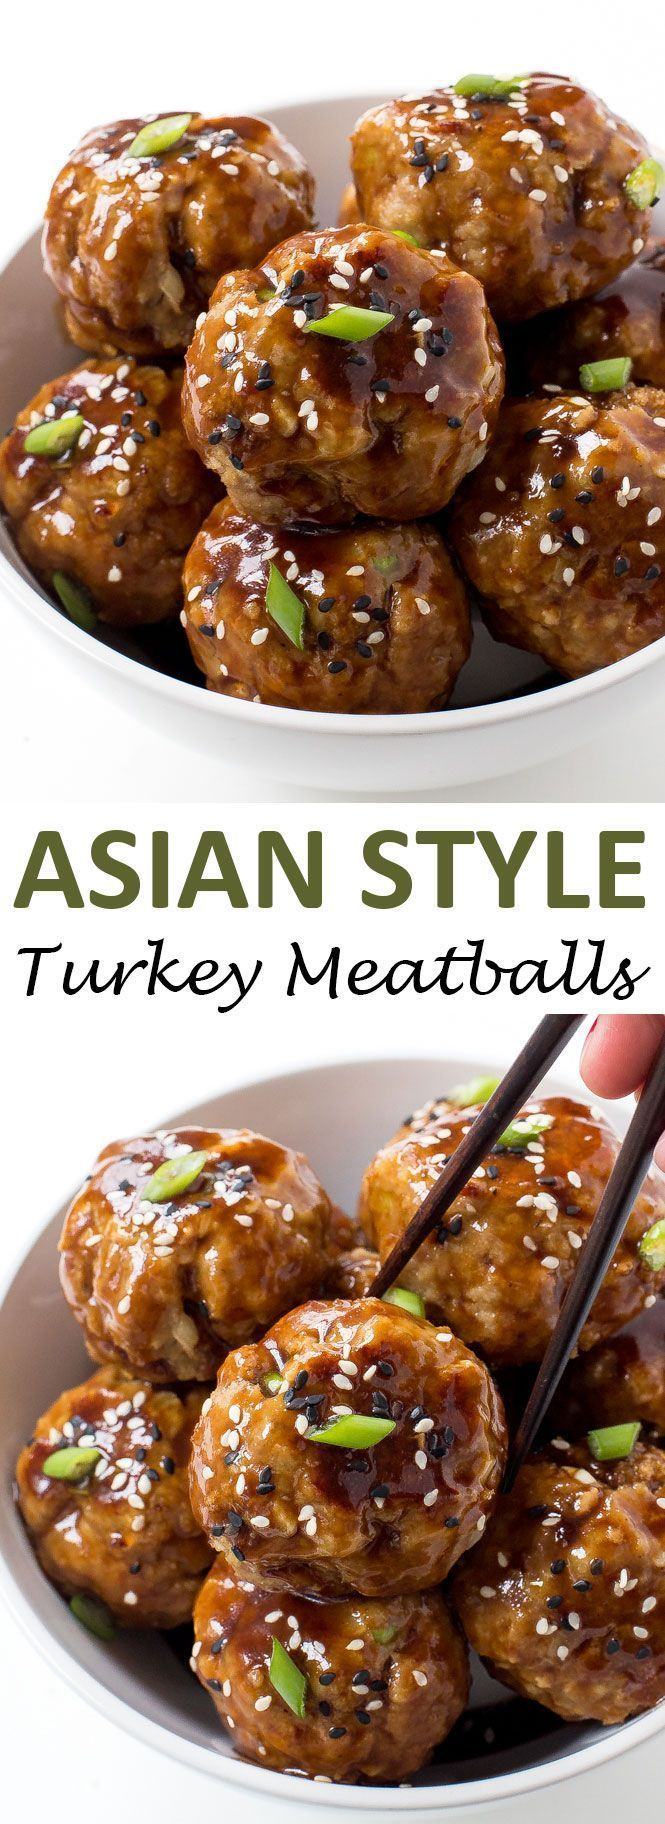 30 MINUTE ASIAN TURKEY MEATBALLS. BAKED AND TOSSED IN AN ASIAN INSPIRED SAUCE ==INGREDIENTS== 1 lb ground turkey, ¾c panko breadcrumbs, 3 cloves garlic, 1 whole green onion, 1 large egg, ½t sesame oil, 1T low sodium soy sauce =ASIAN SAUCE= ¼c hoisin sauce, ⅛c low sodium soy sauce, 1T water, 1t sesame oil, green onions for serving opt sesame seeds for serving opt      ==============